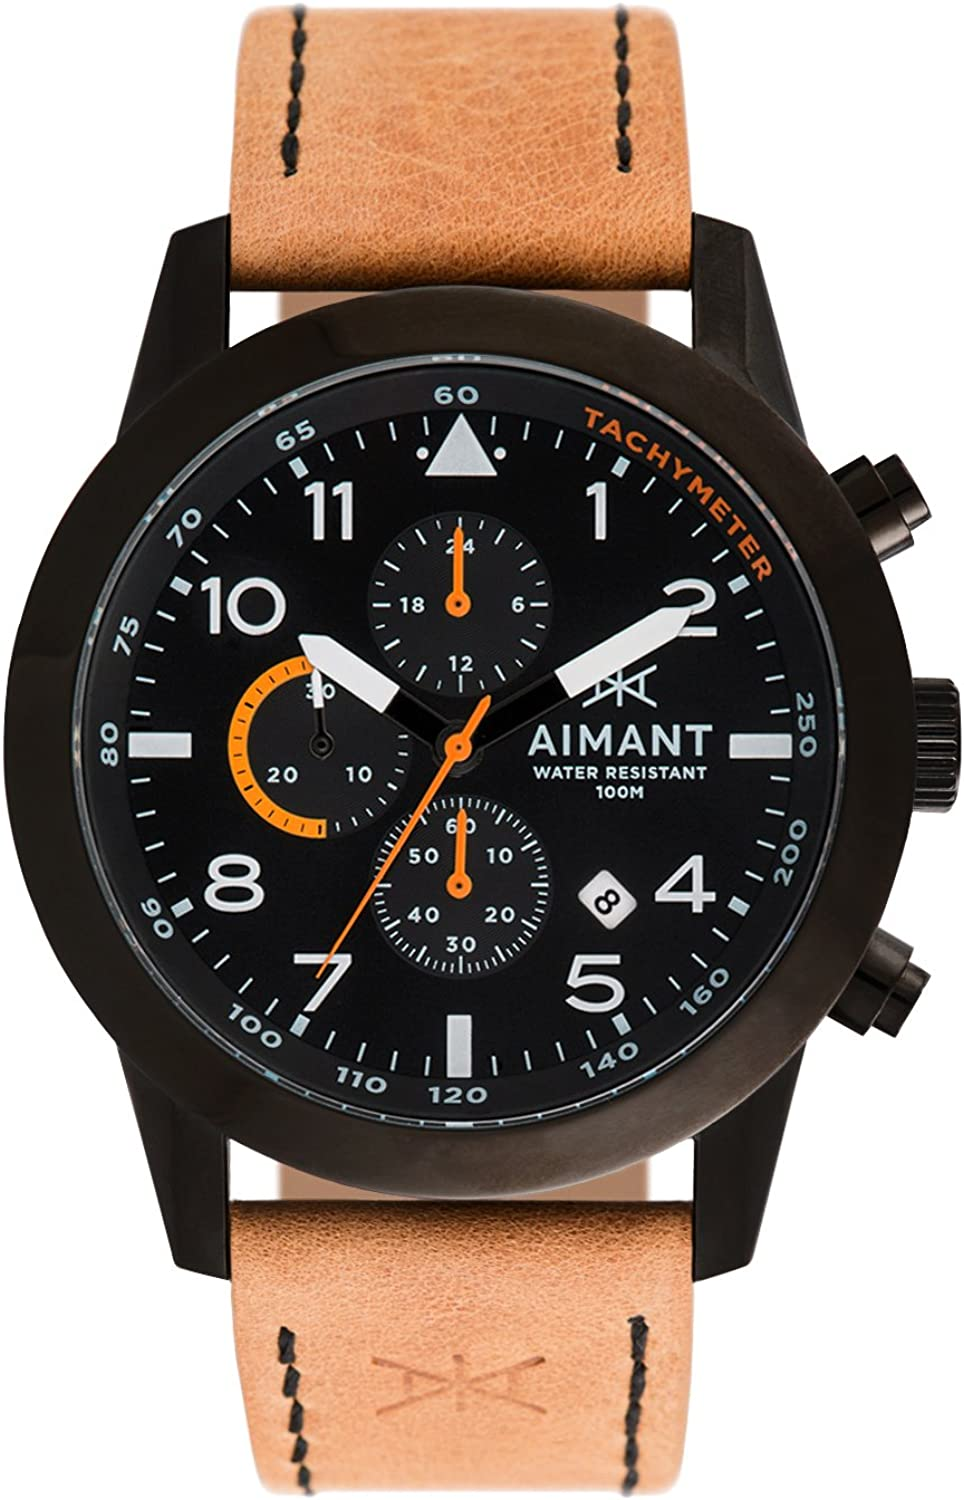 AIMANT Berlin Cronograph Watches : 47 MM Men's Analog Watch : Leather Strap